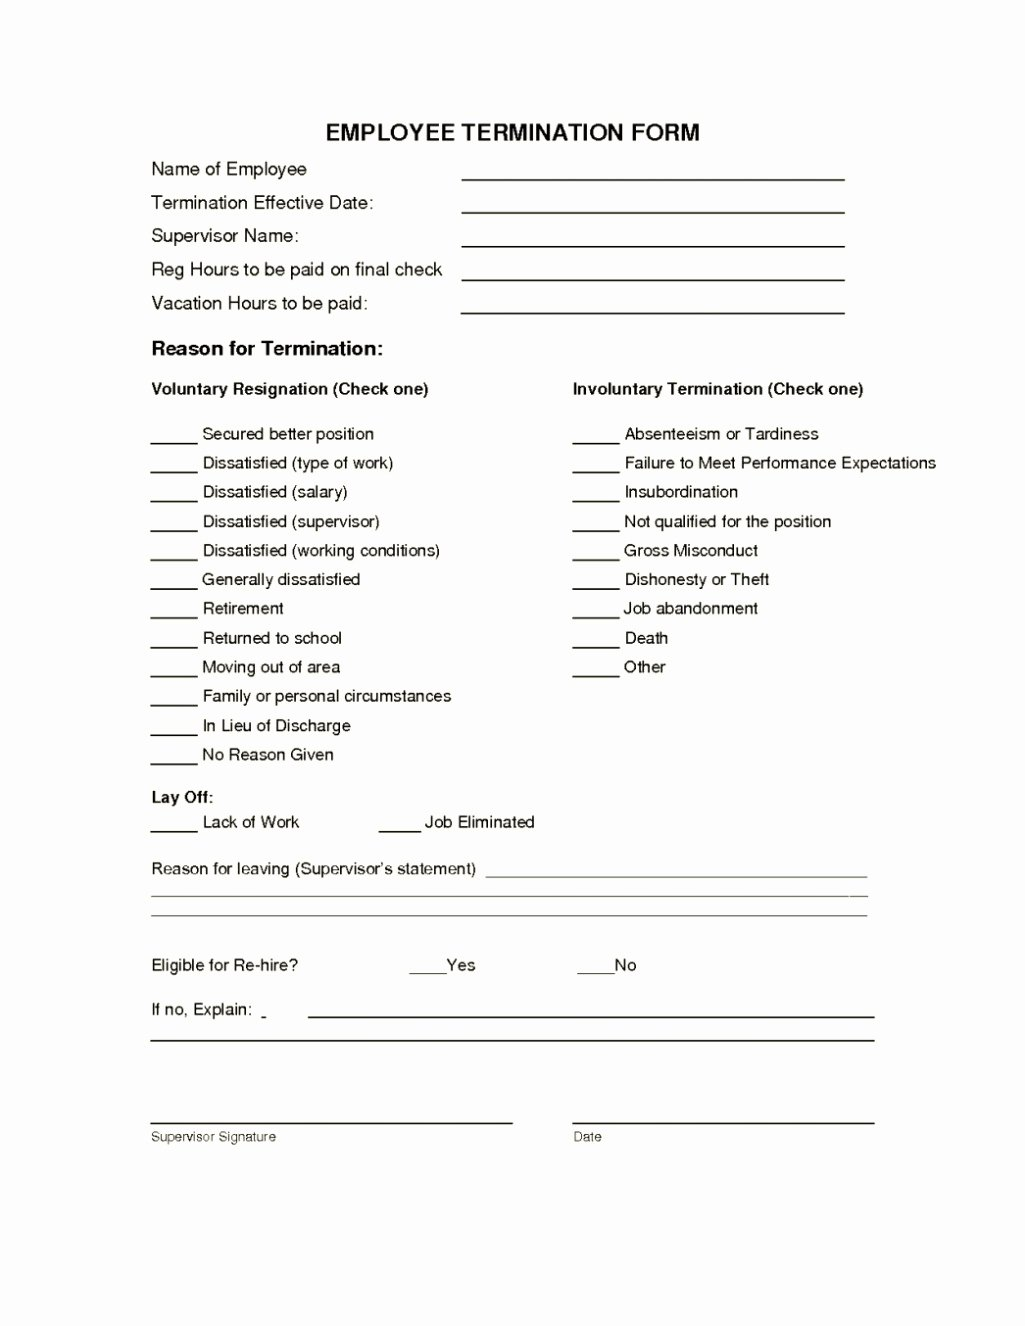 Employee Termination form Template New Employee Termination form Template Template Update234